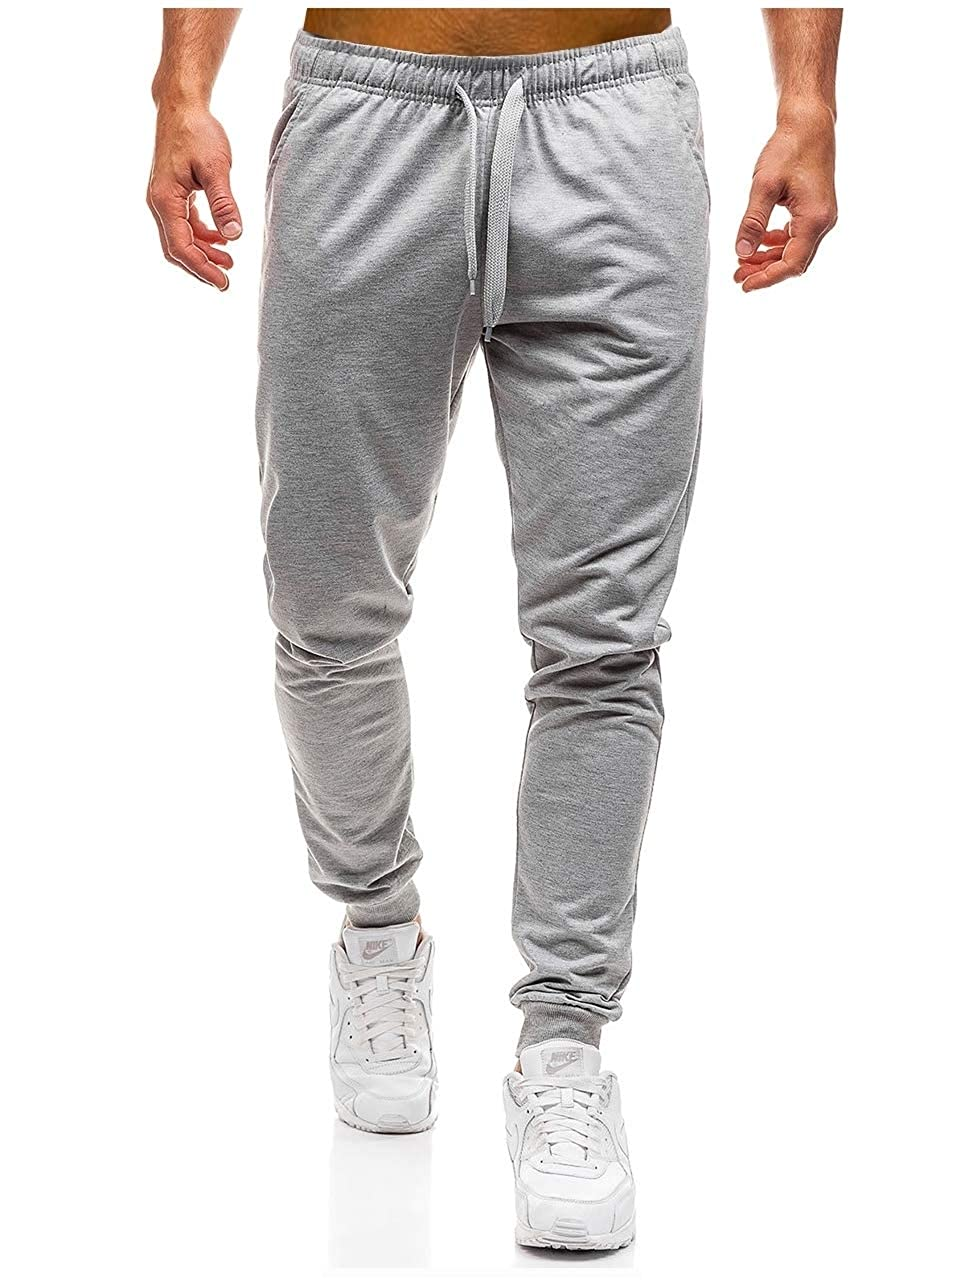 DressU Mens Solid-Colored Athletic Comfort Relaxed-Fit Leisure Harem Trousers